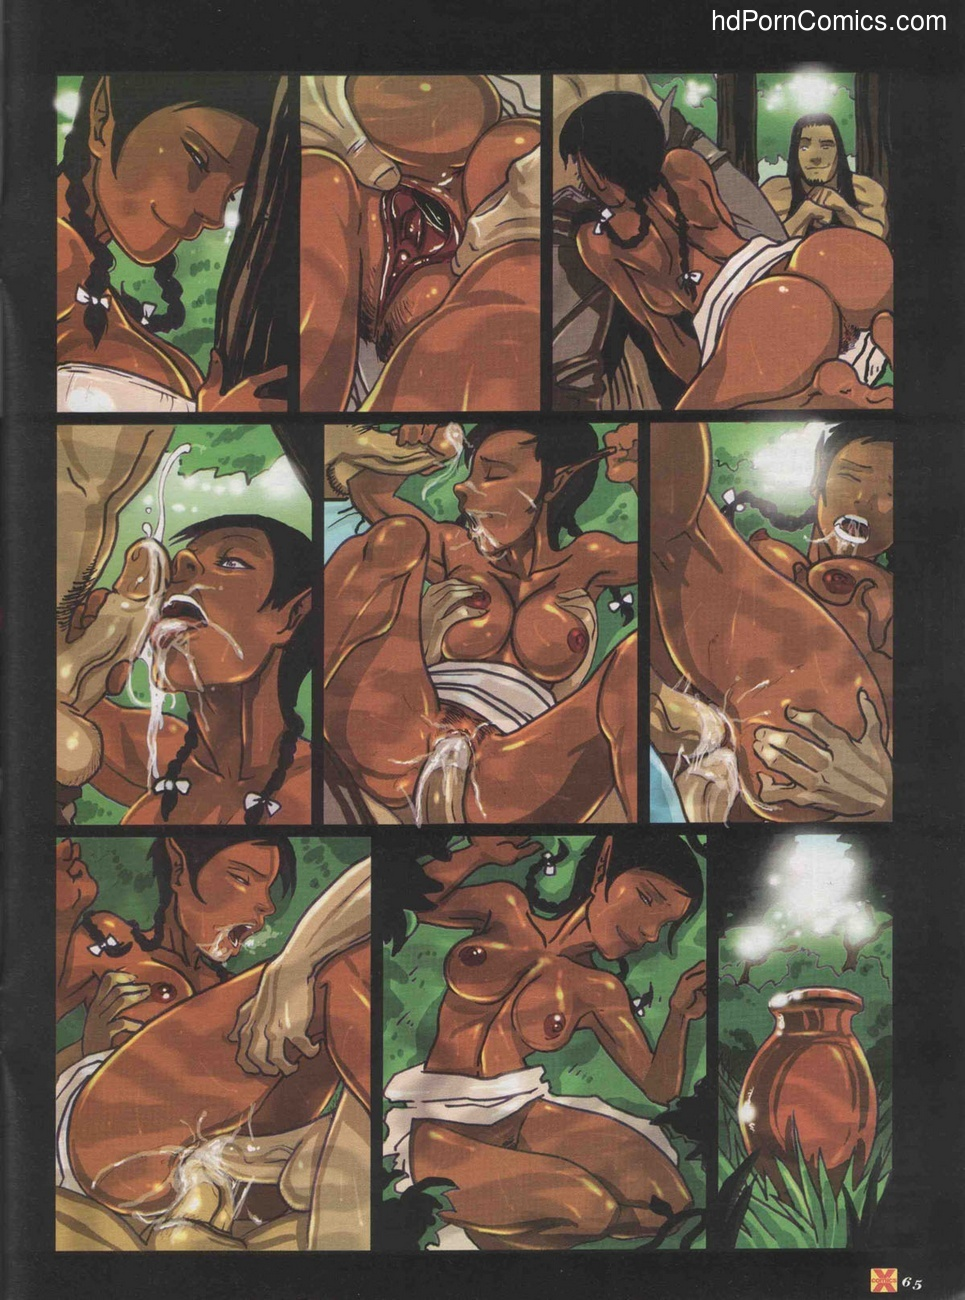 Elves Dreams 23 free sex comic